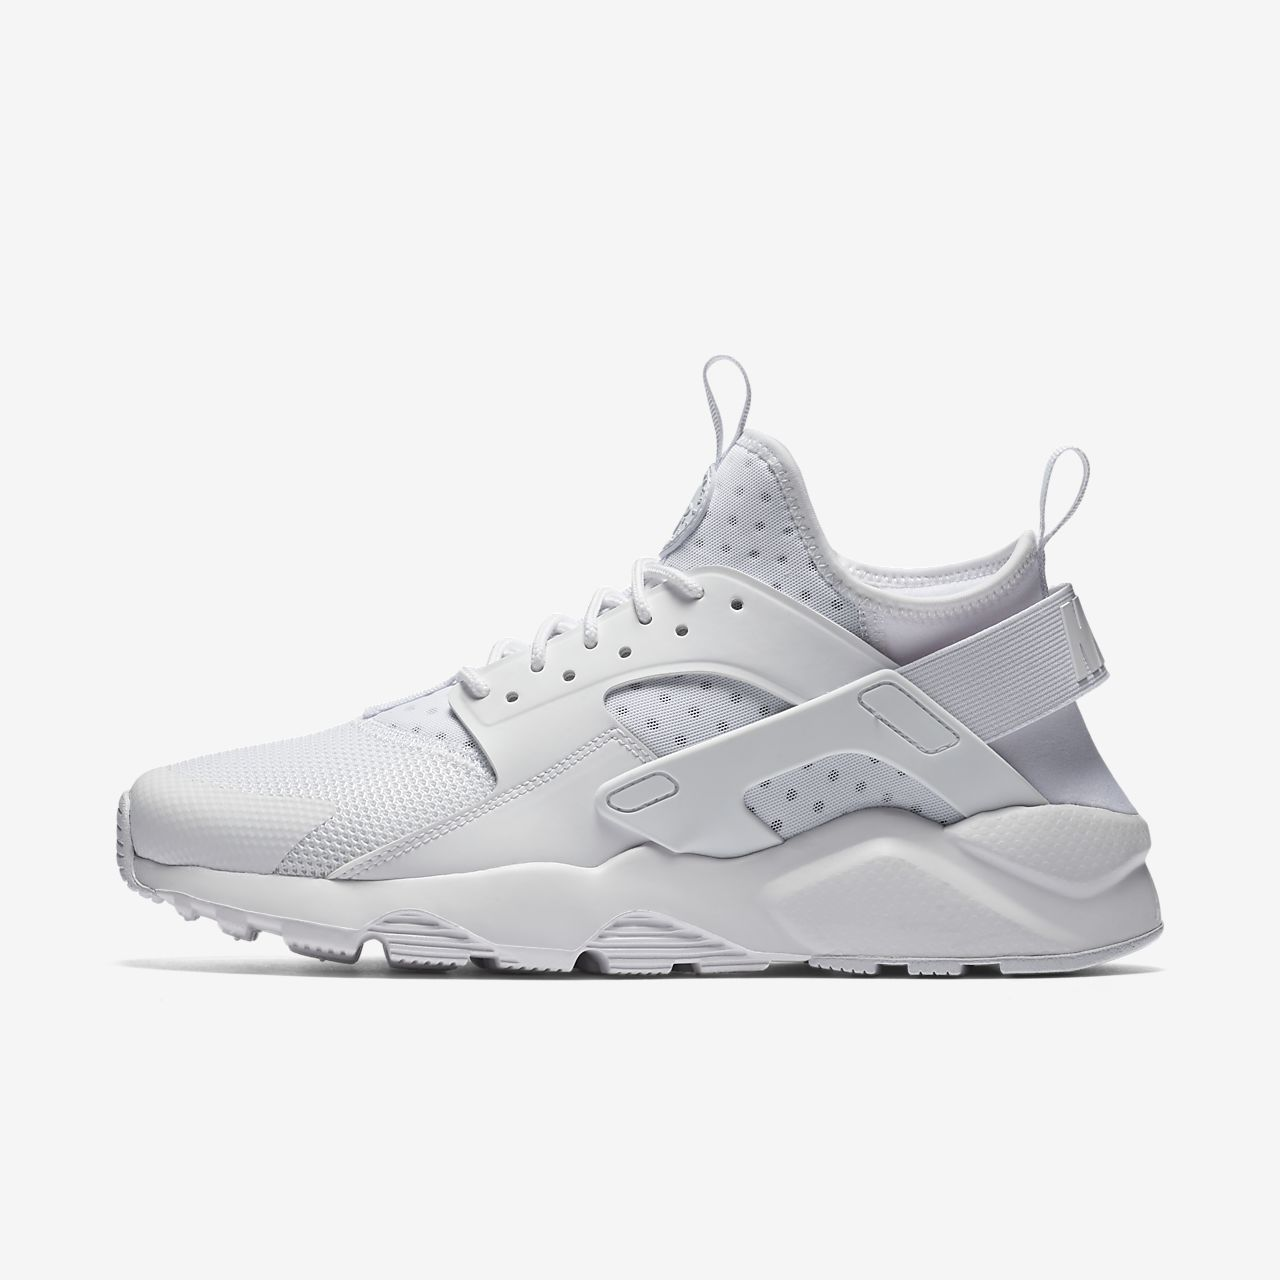 best sneakers c6272 3a641 Chaussure Nike Air Huarache Ultra pour Homme